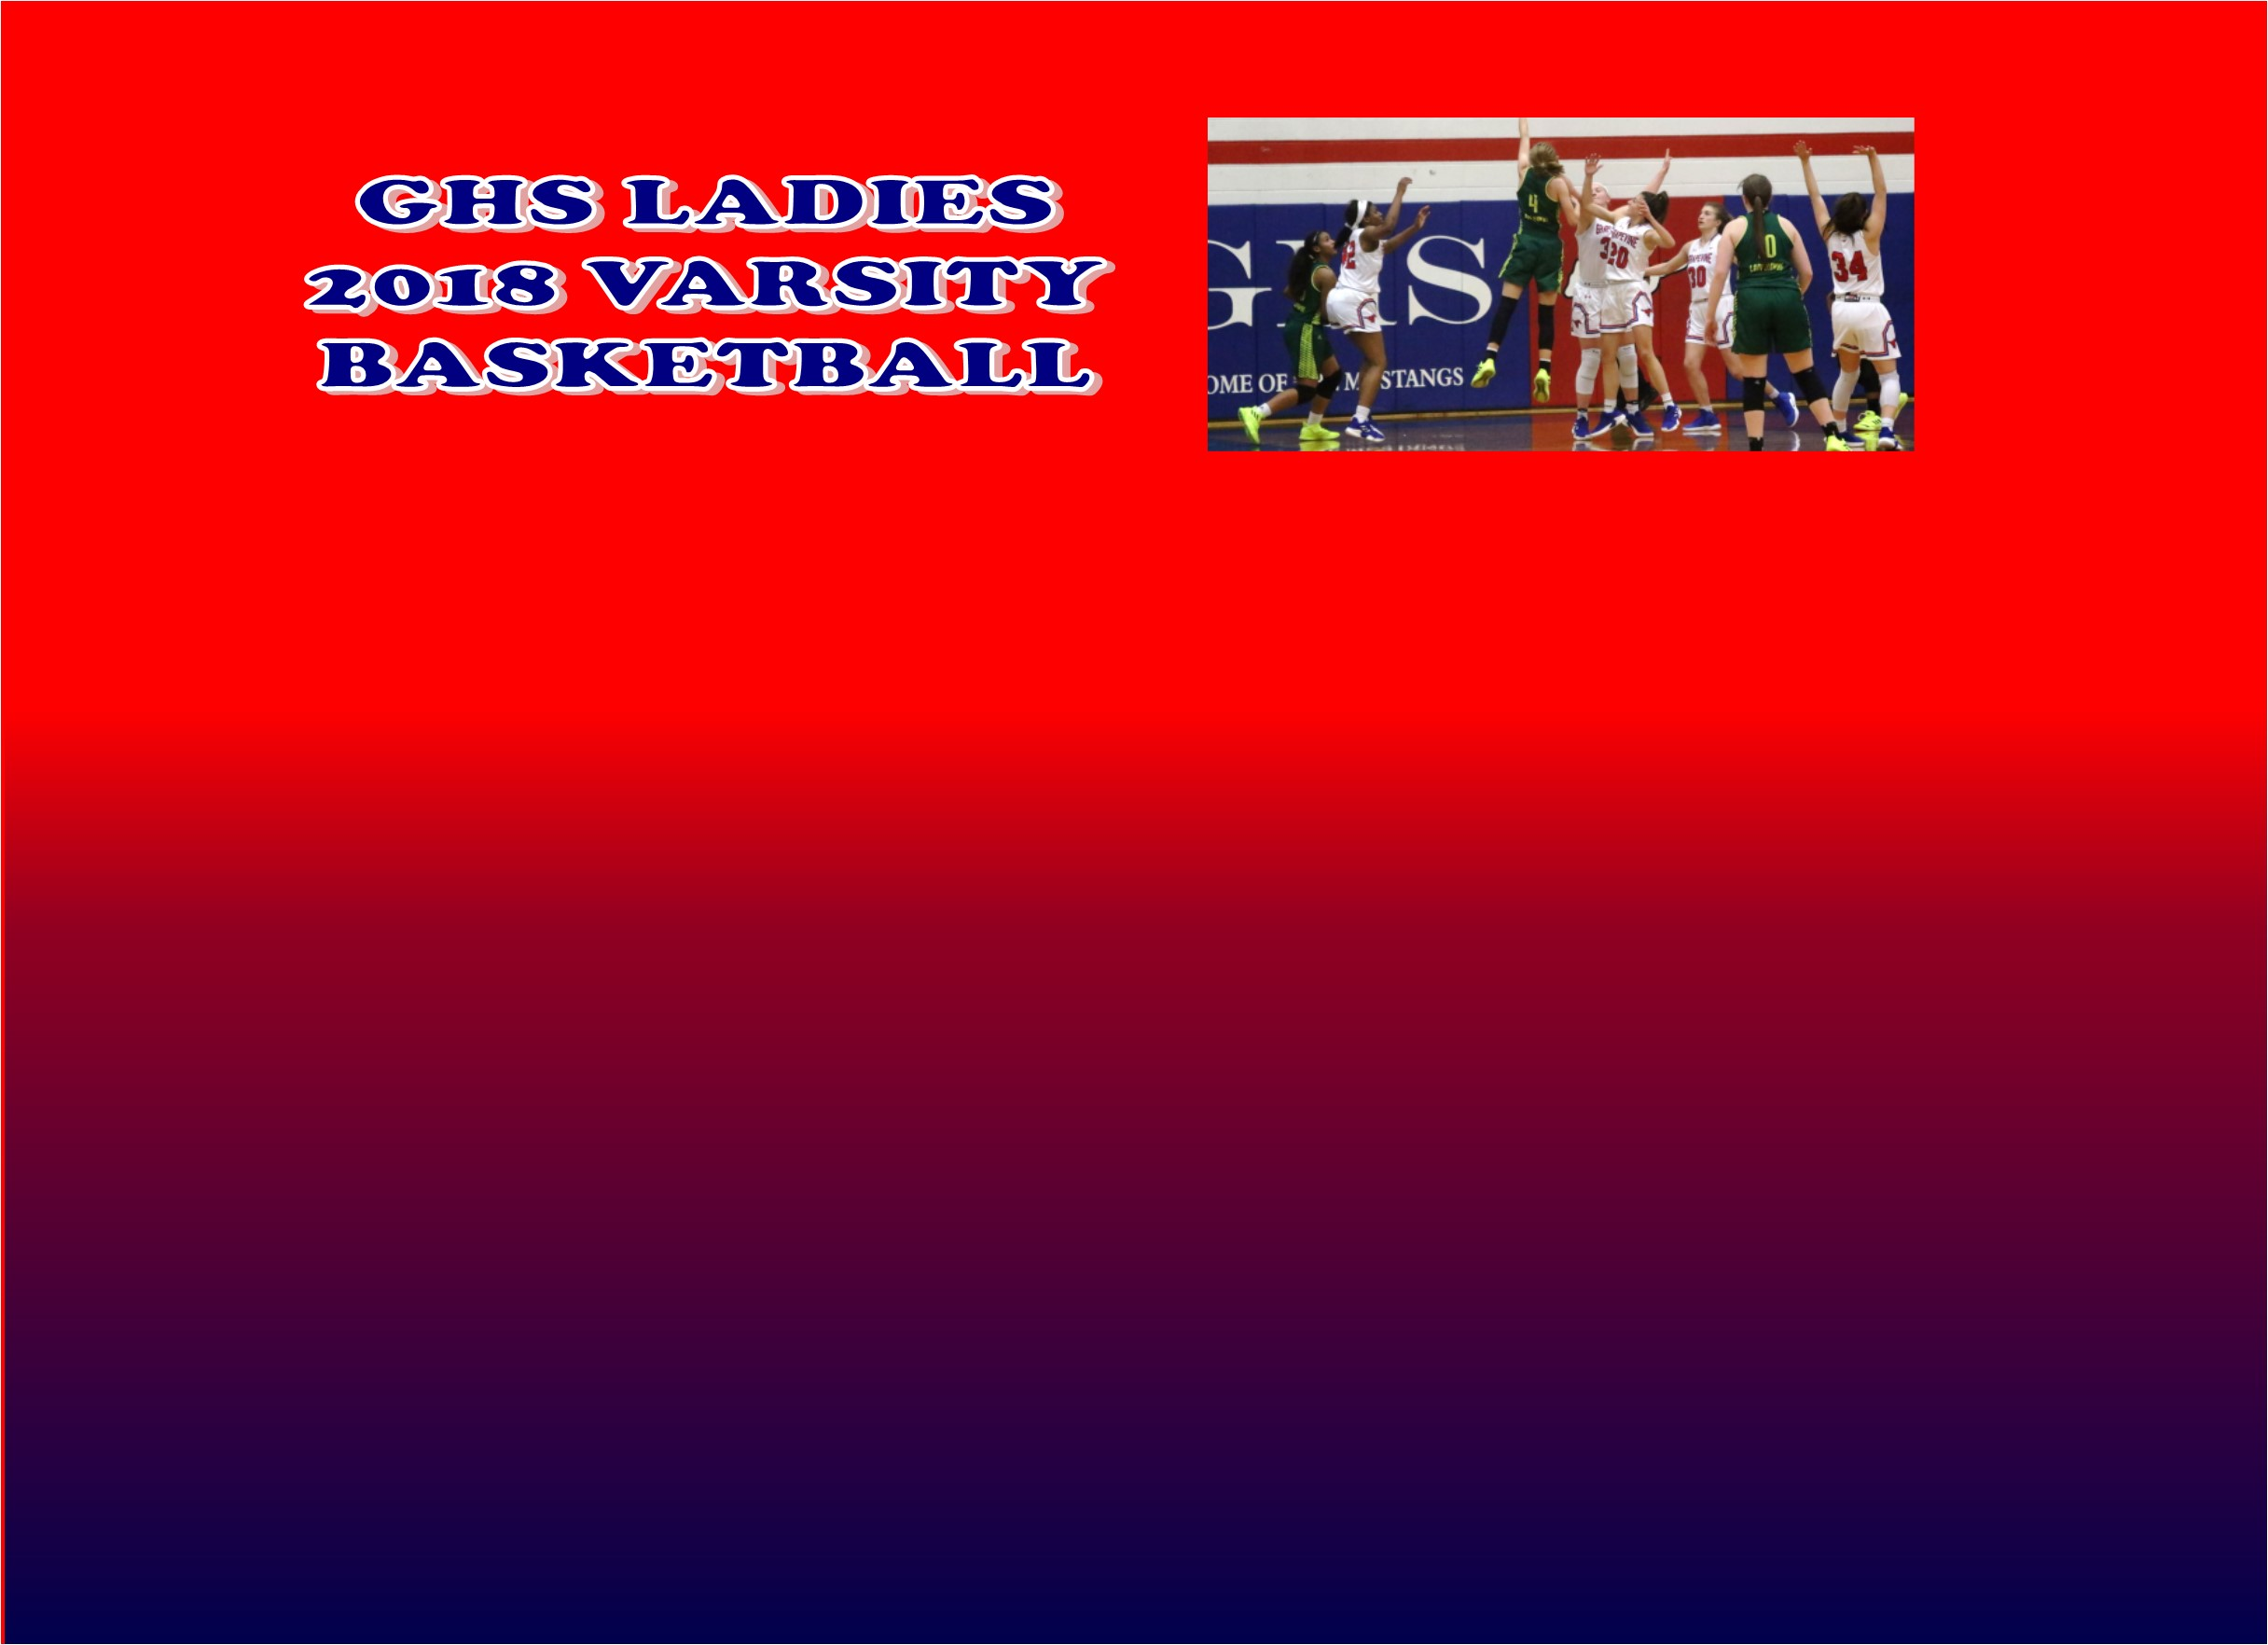 GHS Basketball: Grapevine Lady Mustangs Defeat Birdville Lady Hawks 39-31